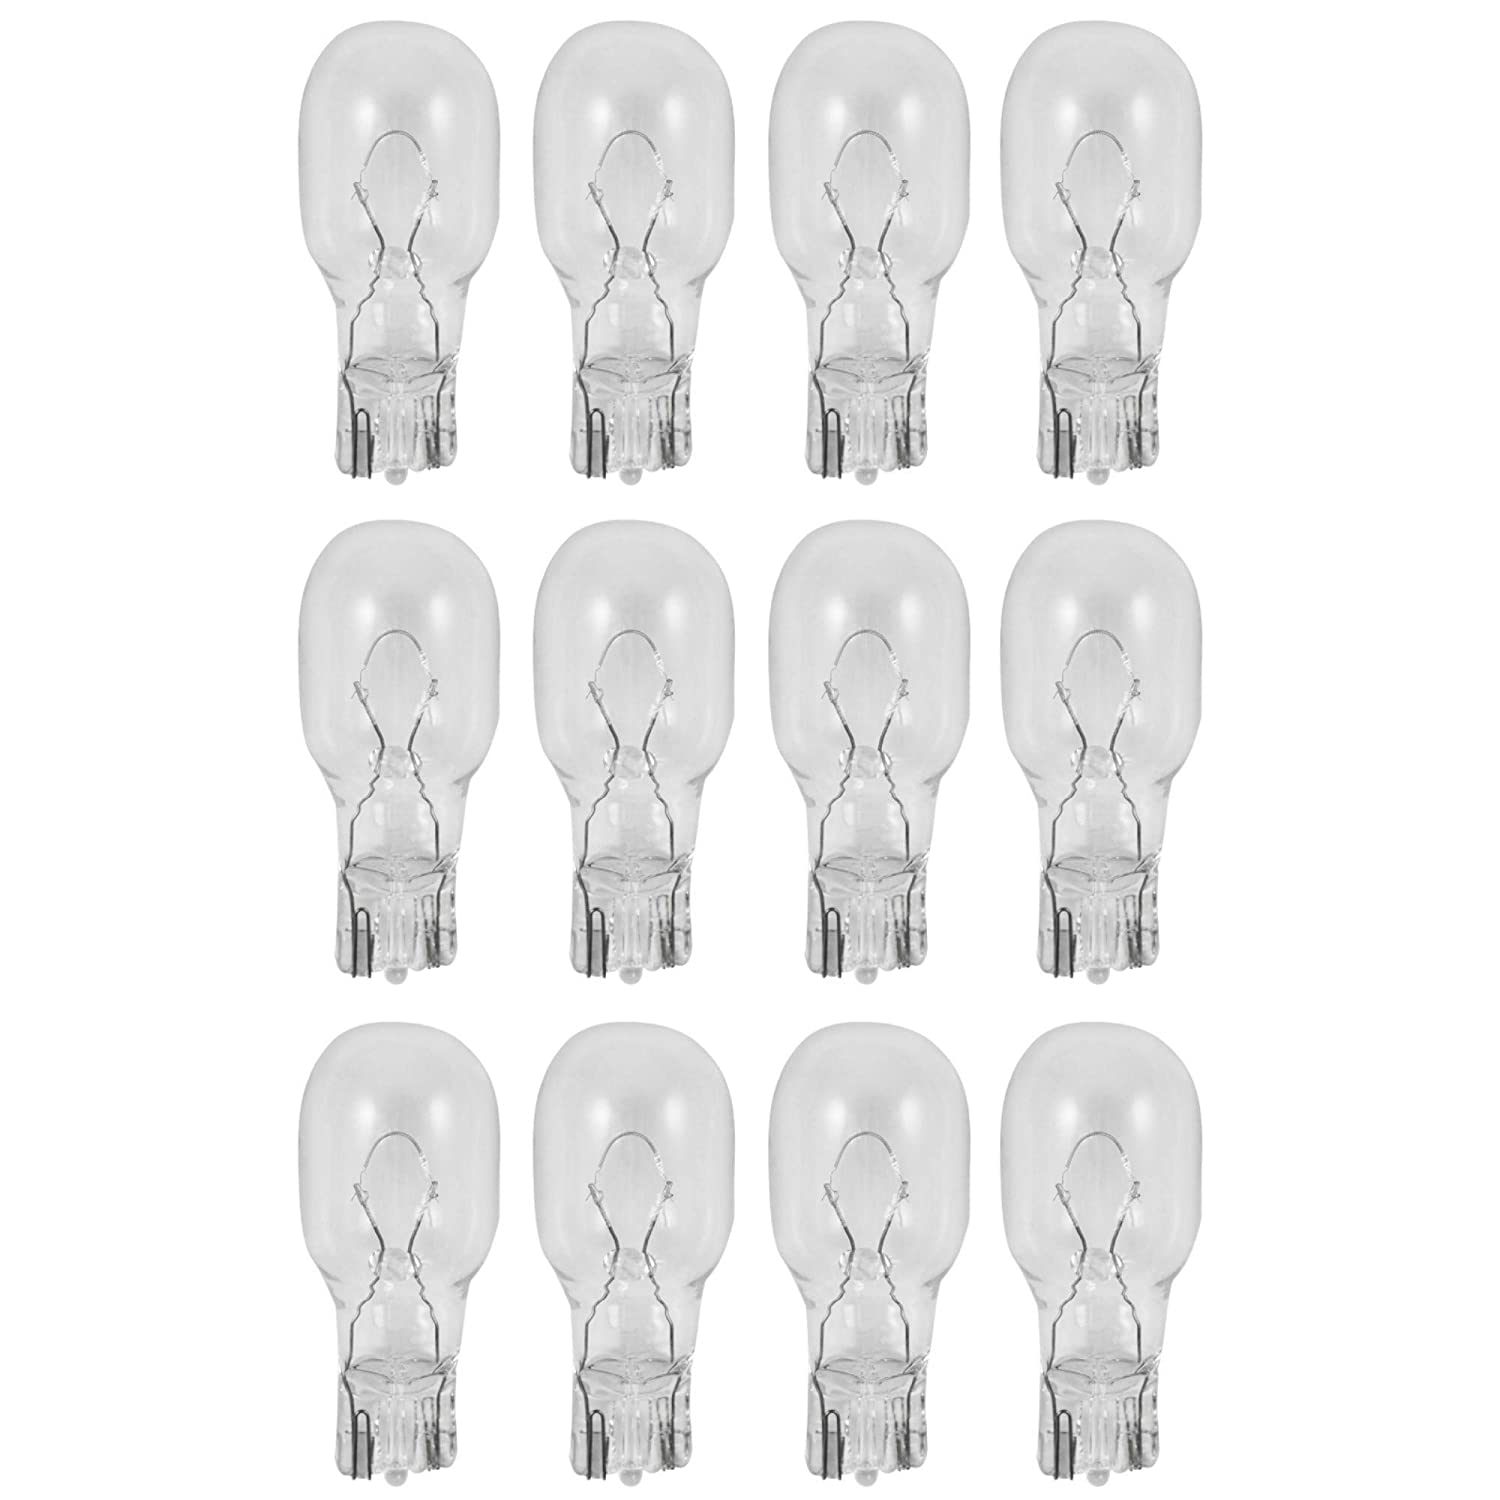 6V 5W Low Voltage T5 Wedge Base Bulb, Long Life, Pack of 12